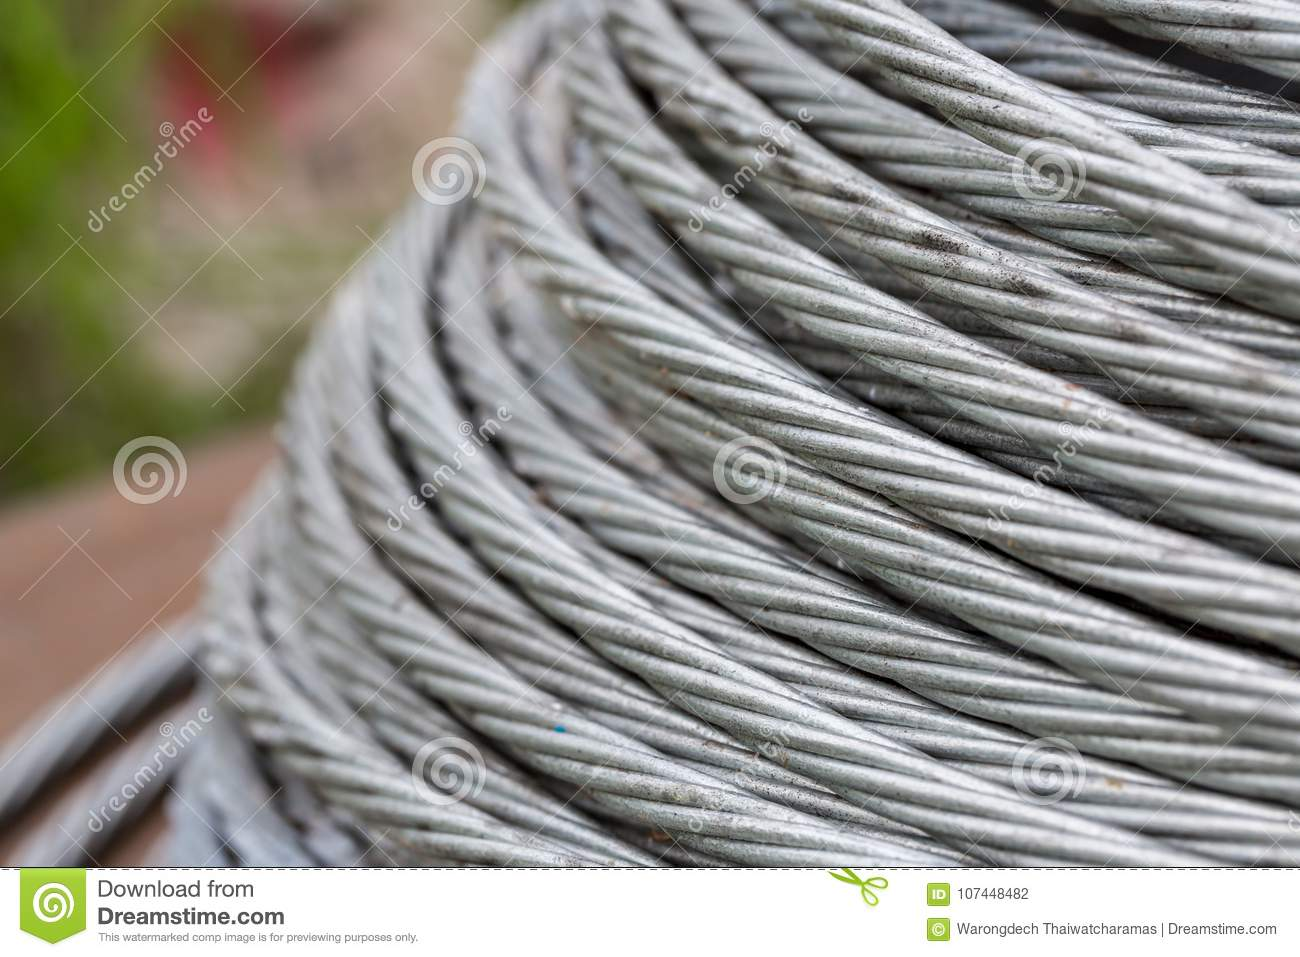 Background Of Steel Cable, Steel Wire Or Steel Rope In The Roll ...